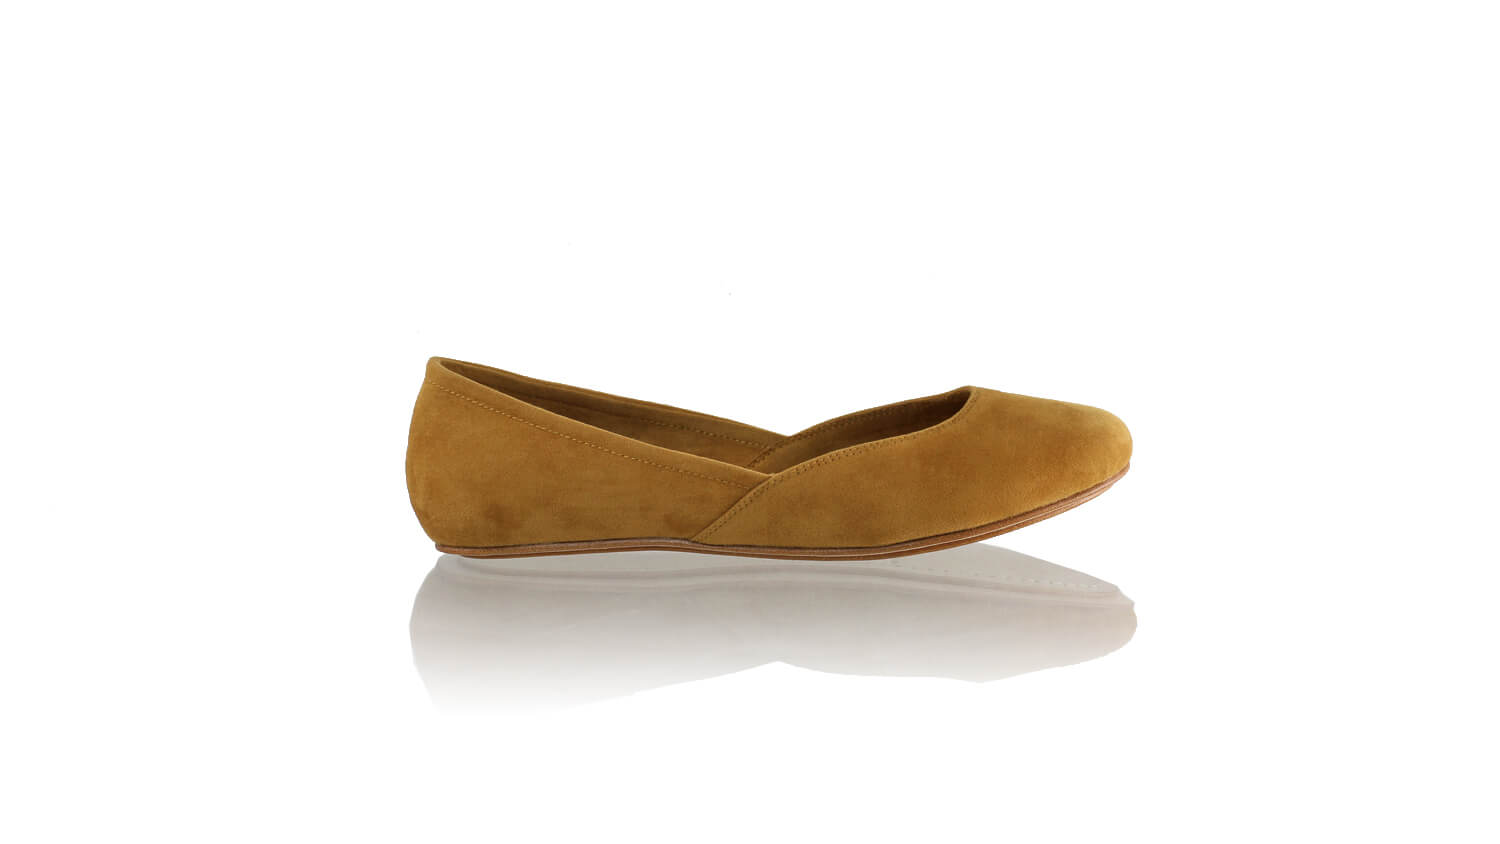 Leather-shoes-Punjab 5mm Ballet - Brown Microsuede 2-sandals flat-NILUH DJELANTIK-NILUH DJELANTIK